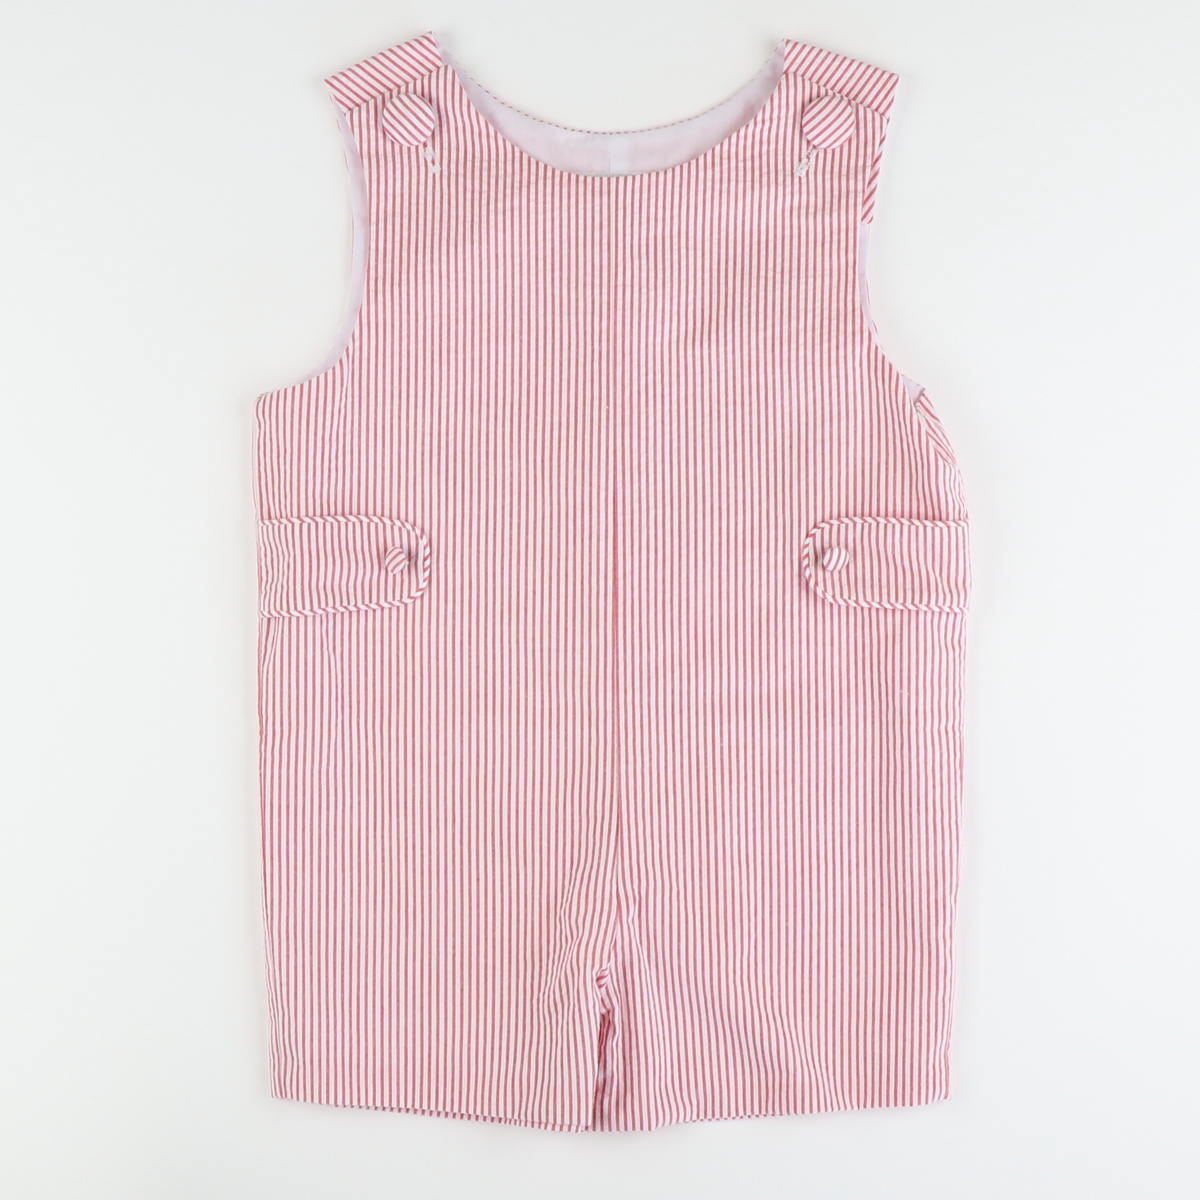 Signature Tab Shortall - Red Stripe Seersucker